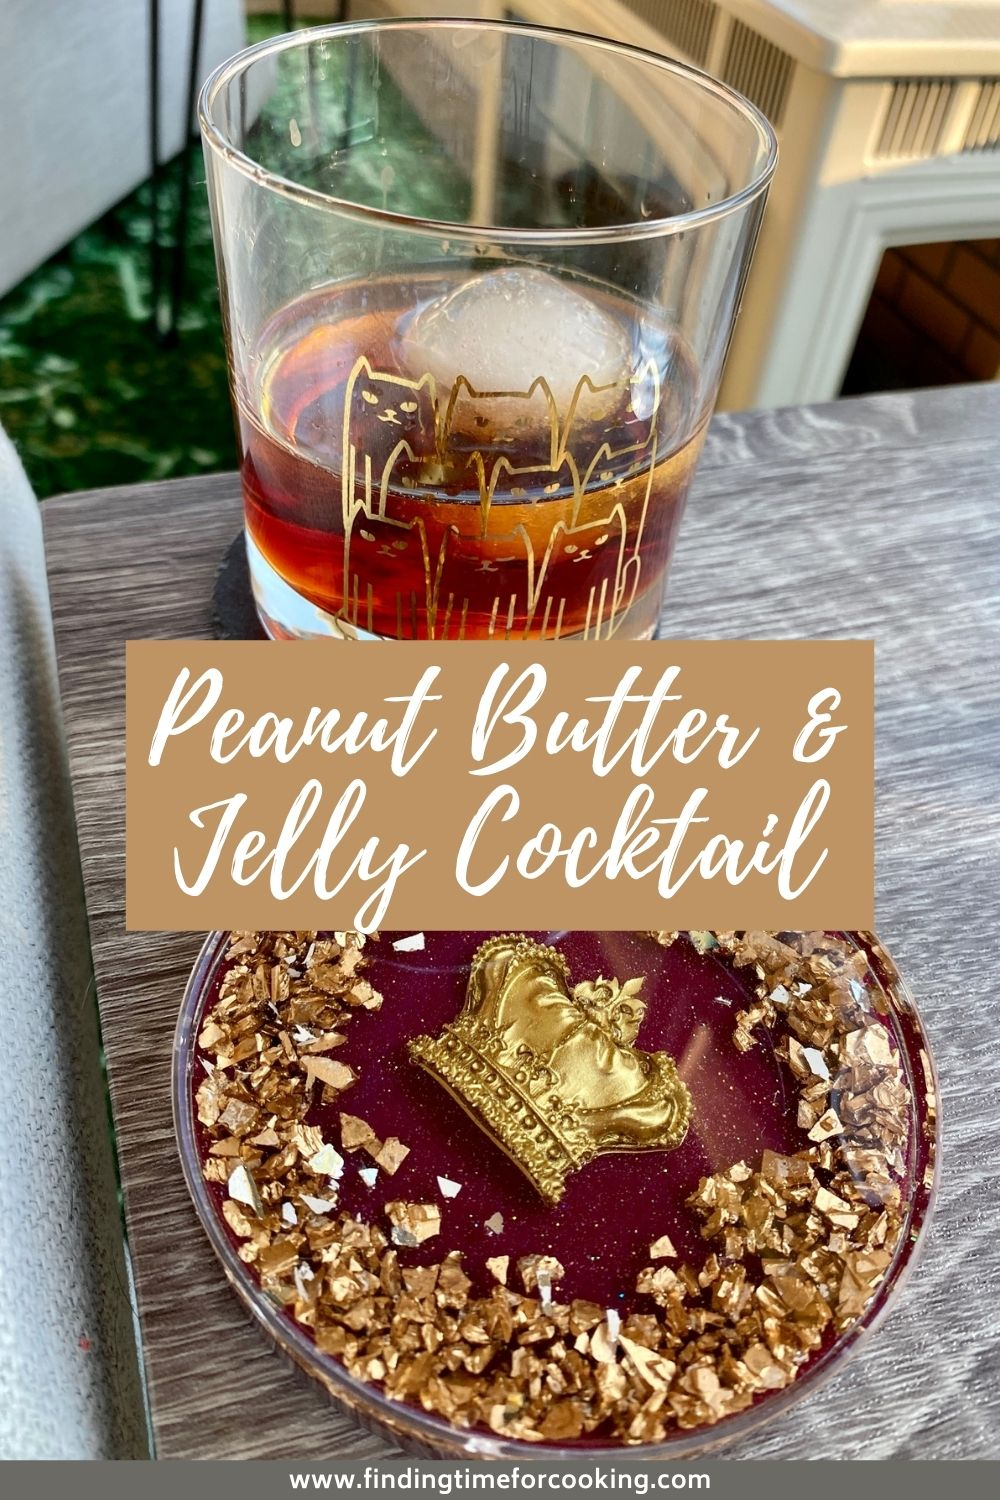 Peanut Butter and Jelly Cocktail   This nostalgic pb&j flavor combo is a fun, indulgent dessert cocktail using Chambord liqueur and Skrewball peanut butter whiskey. Unique cocktail recipe ideas. #cocktail #peanutbutter #jelly #drinkrecipe